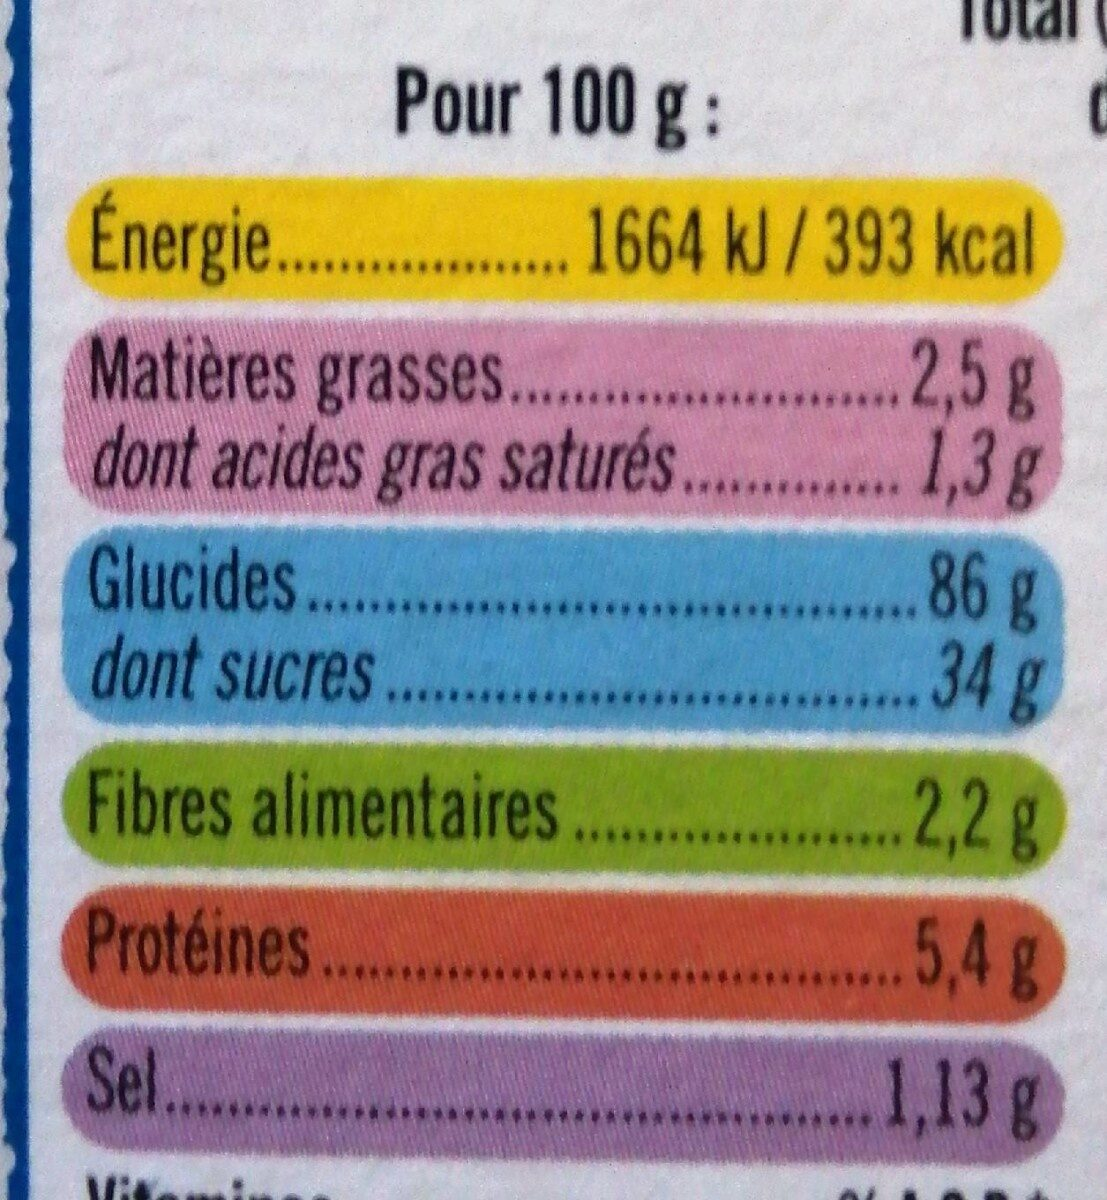 Riz soufflé - Nutrition facts - fr